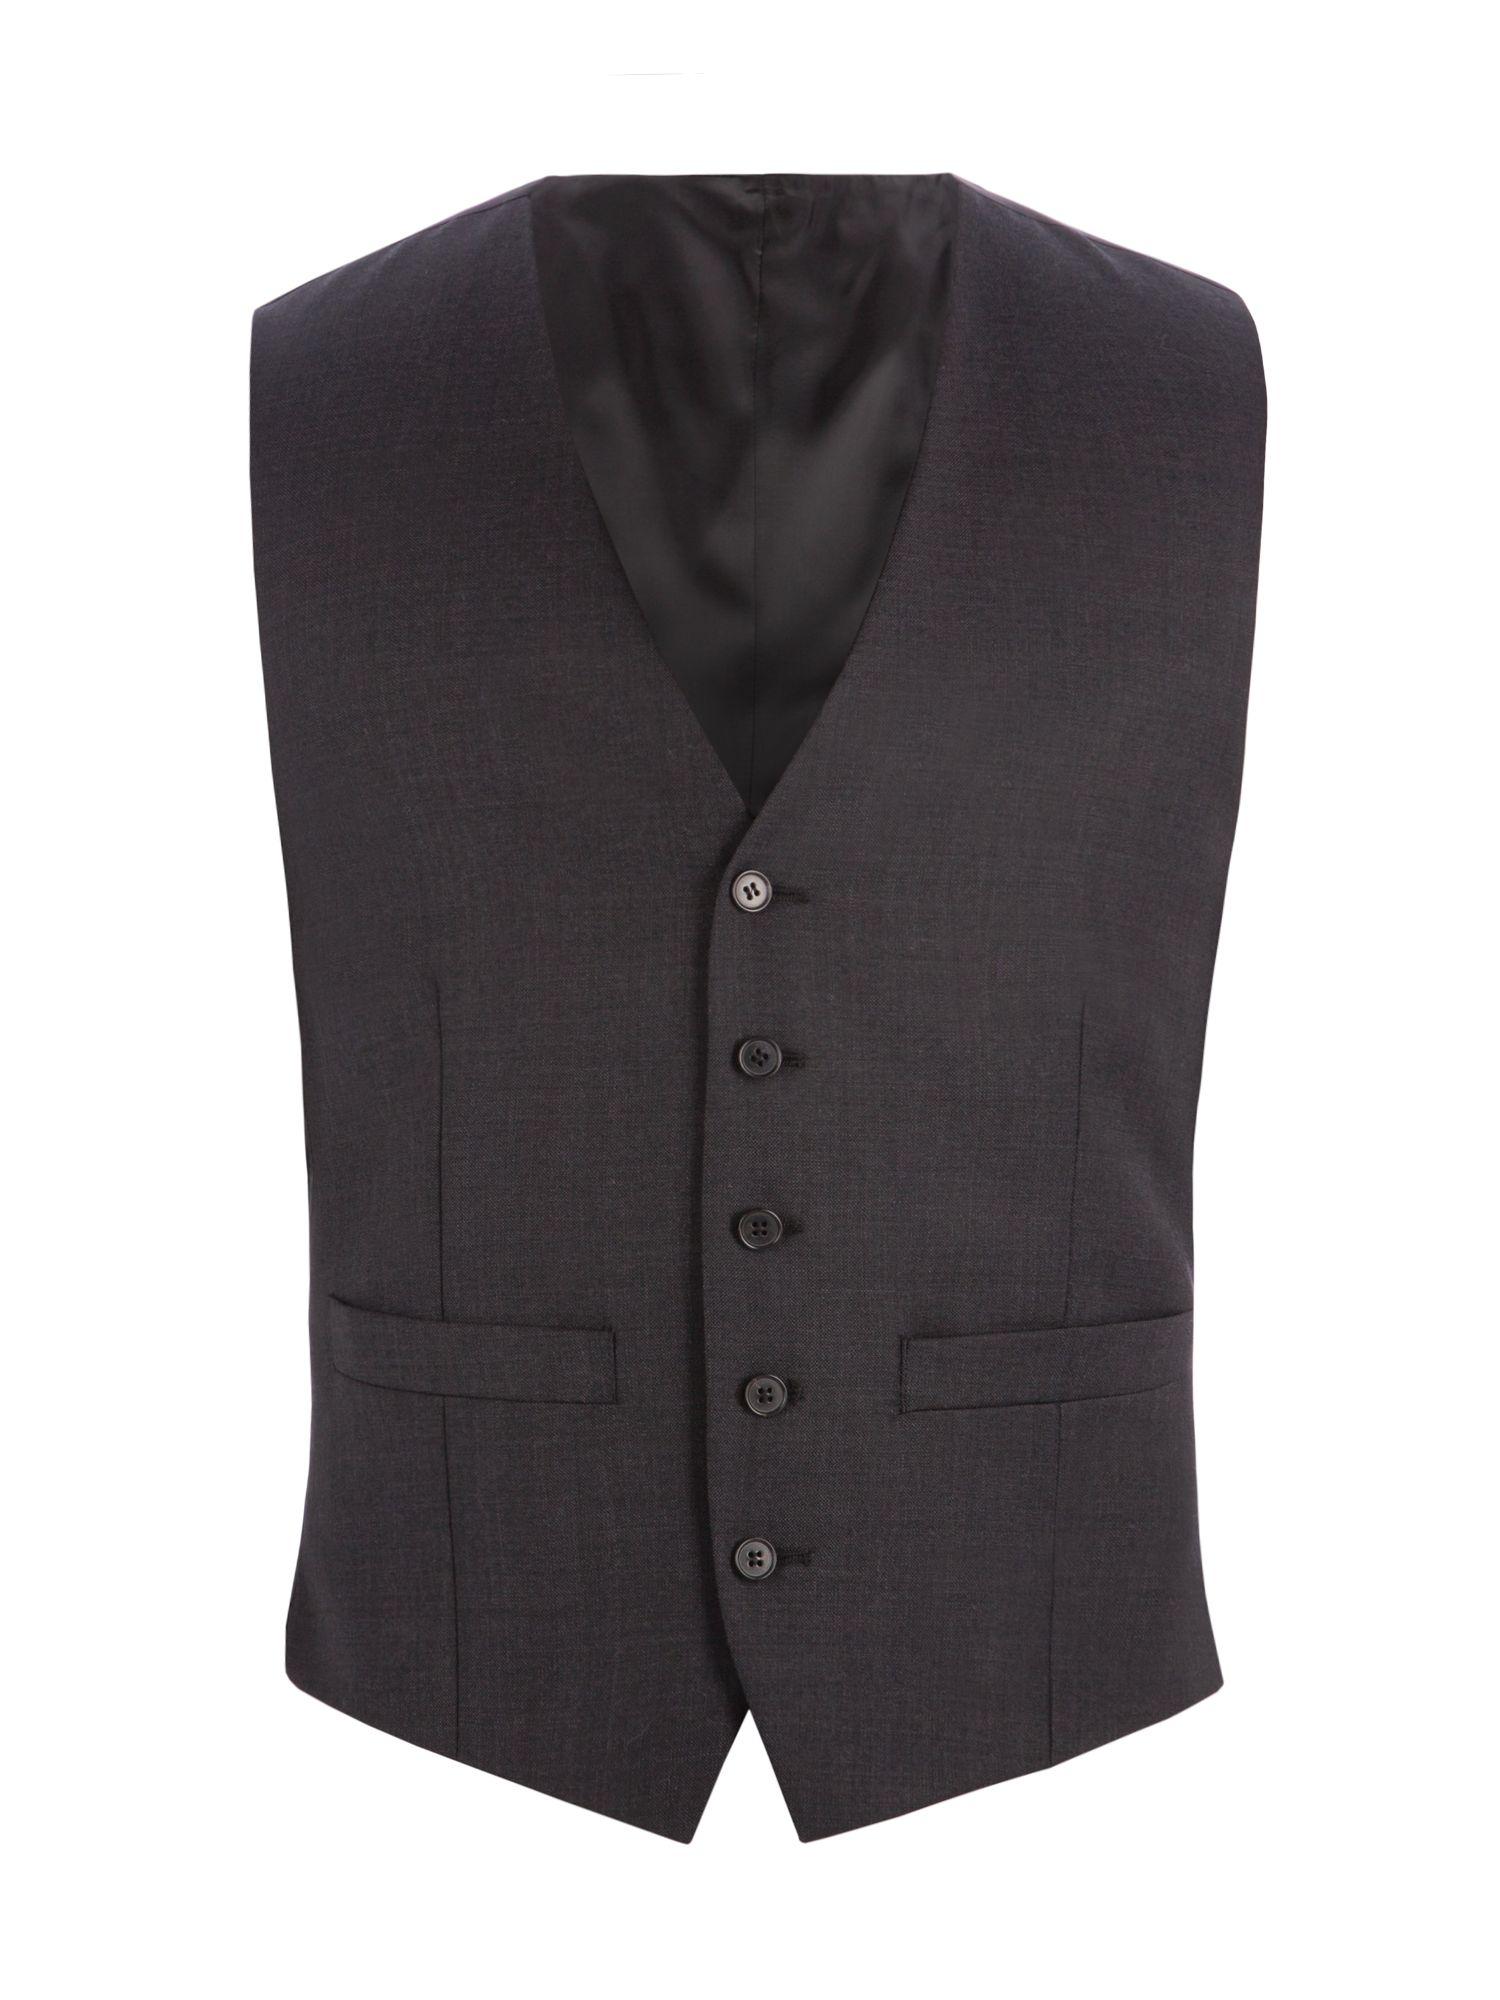 Men's Racing Green Bramley Charcoal Pick & Pick Waistcoat, Charcoal